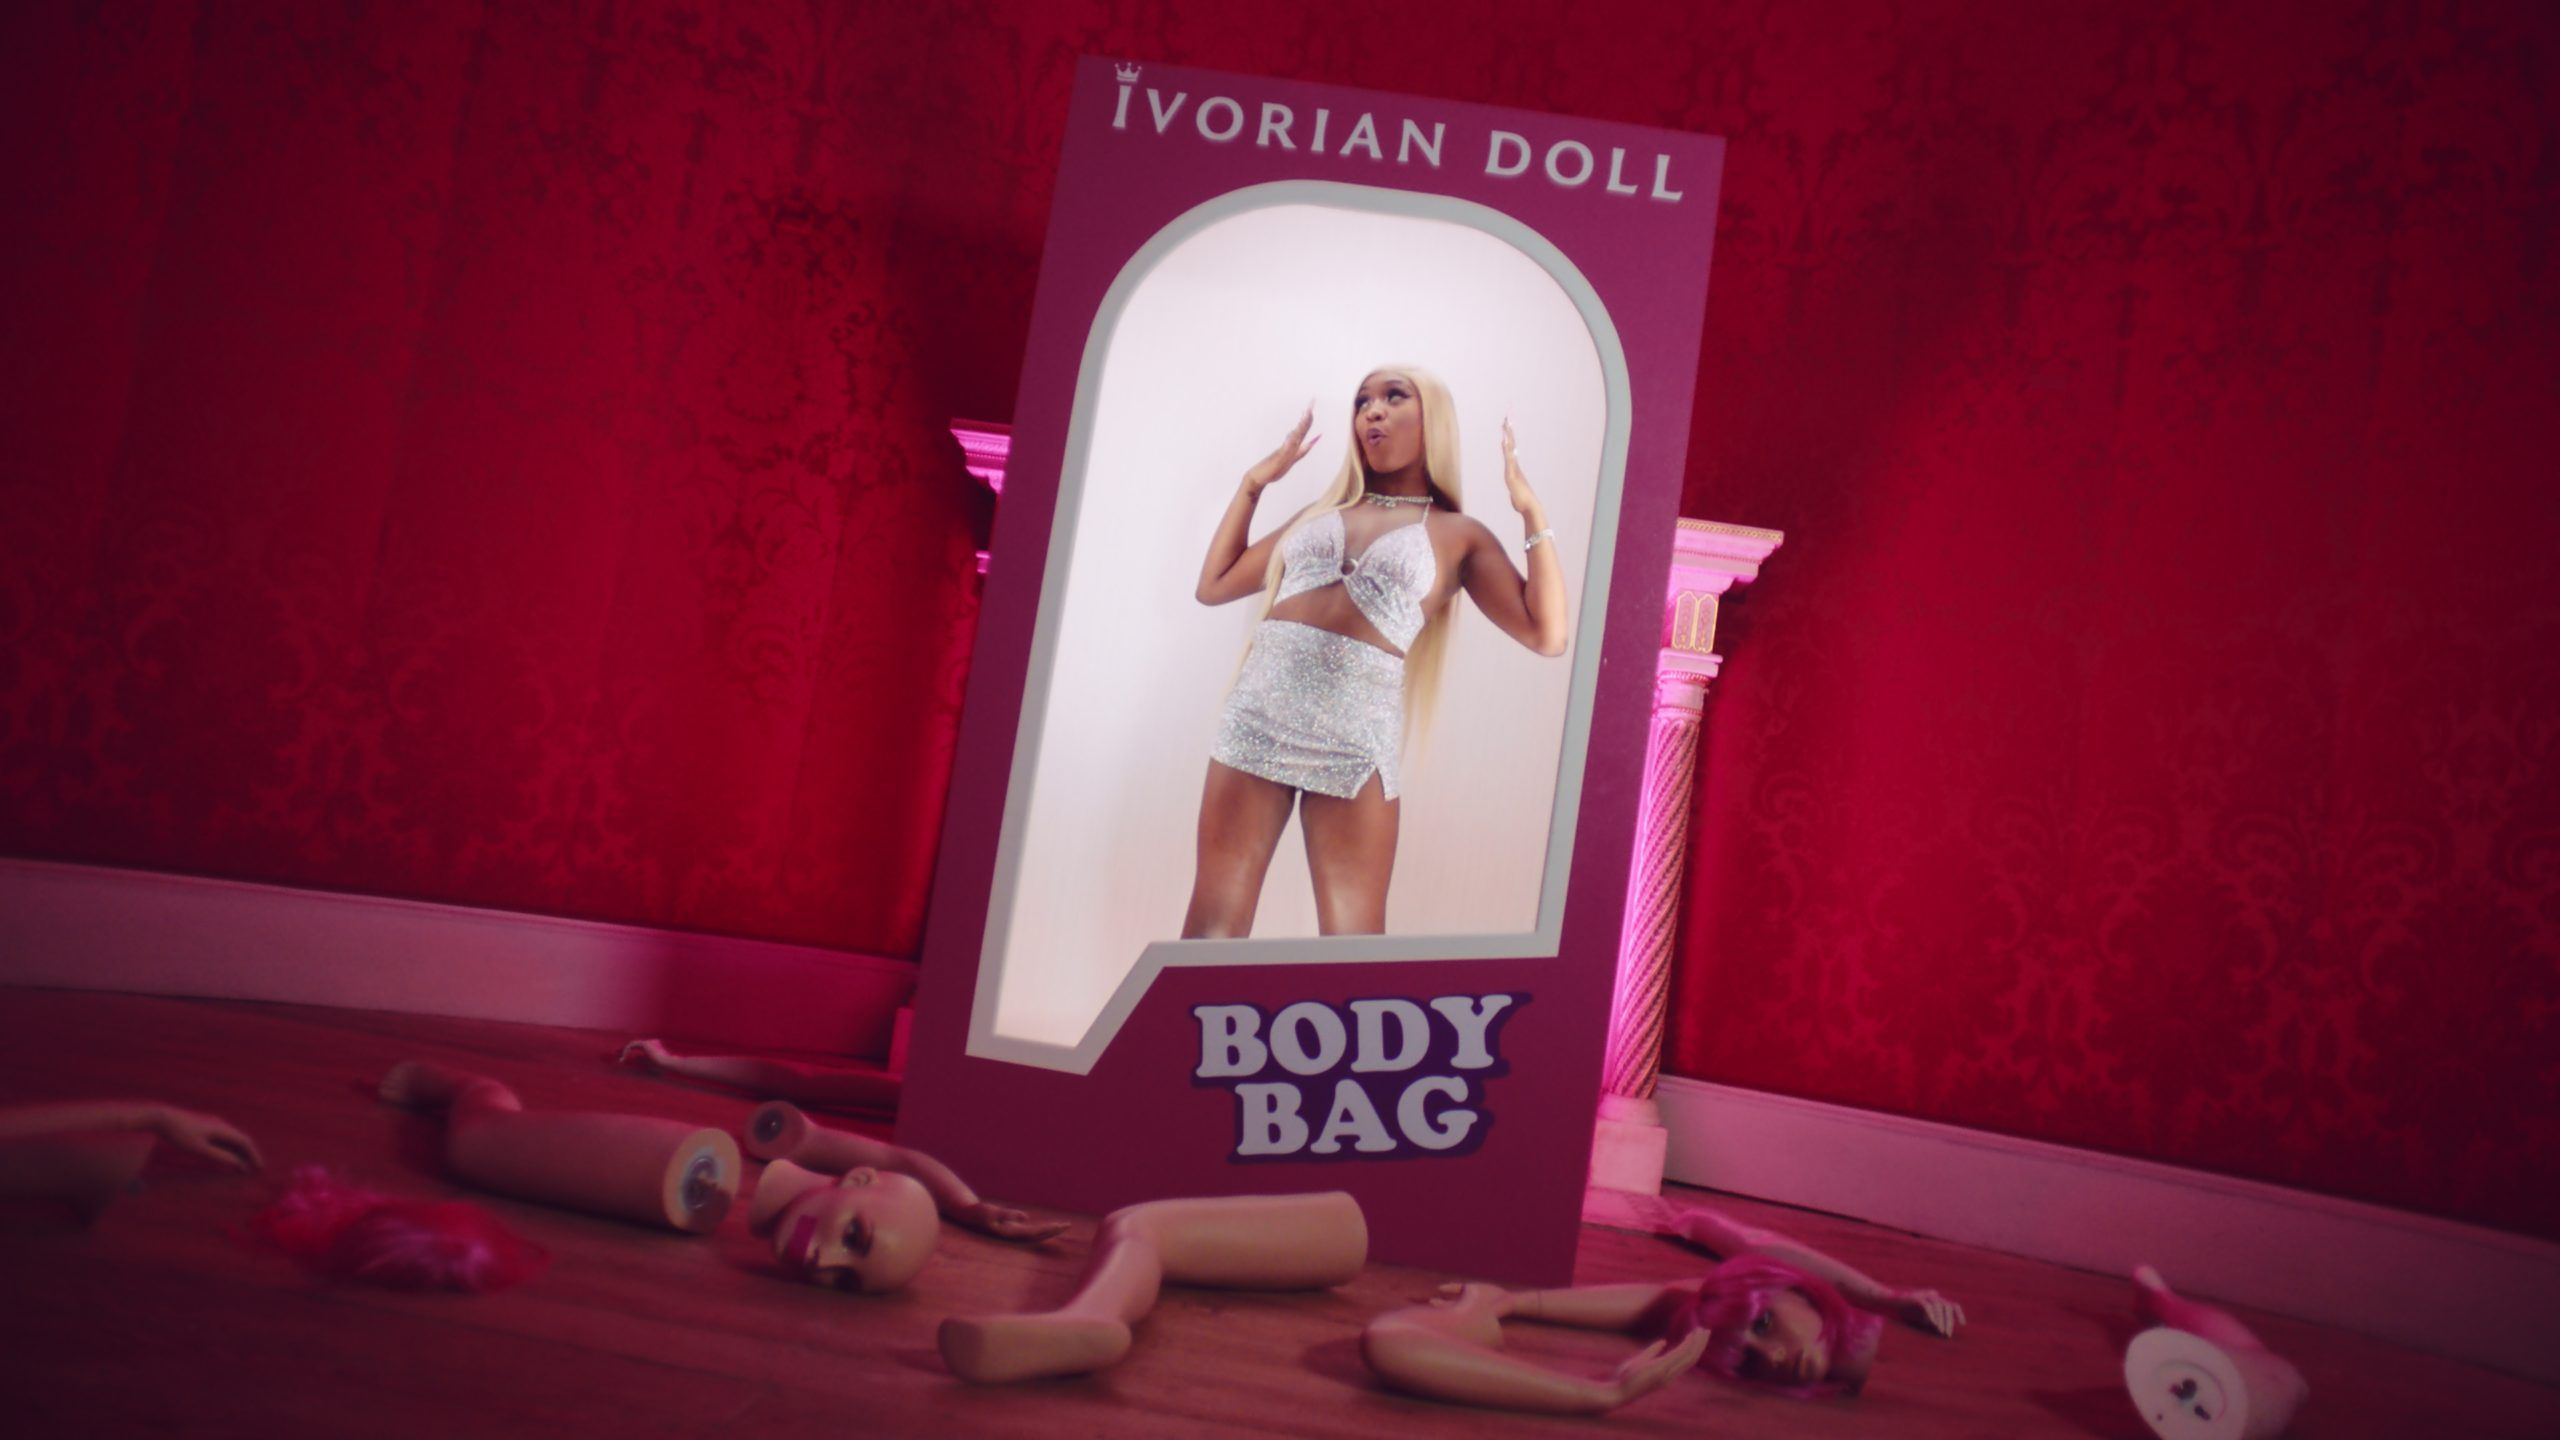 Ivorian Doll – Body Bag